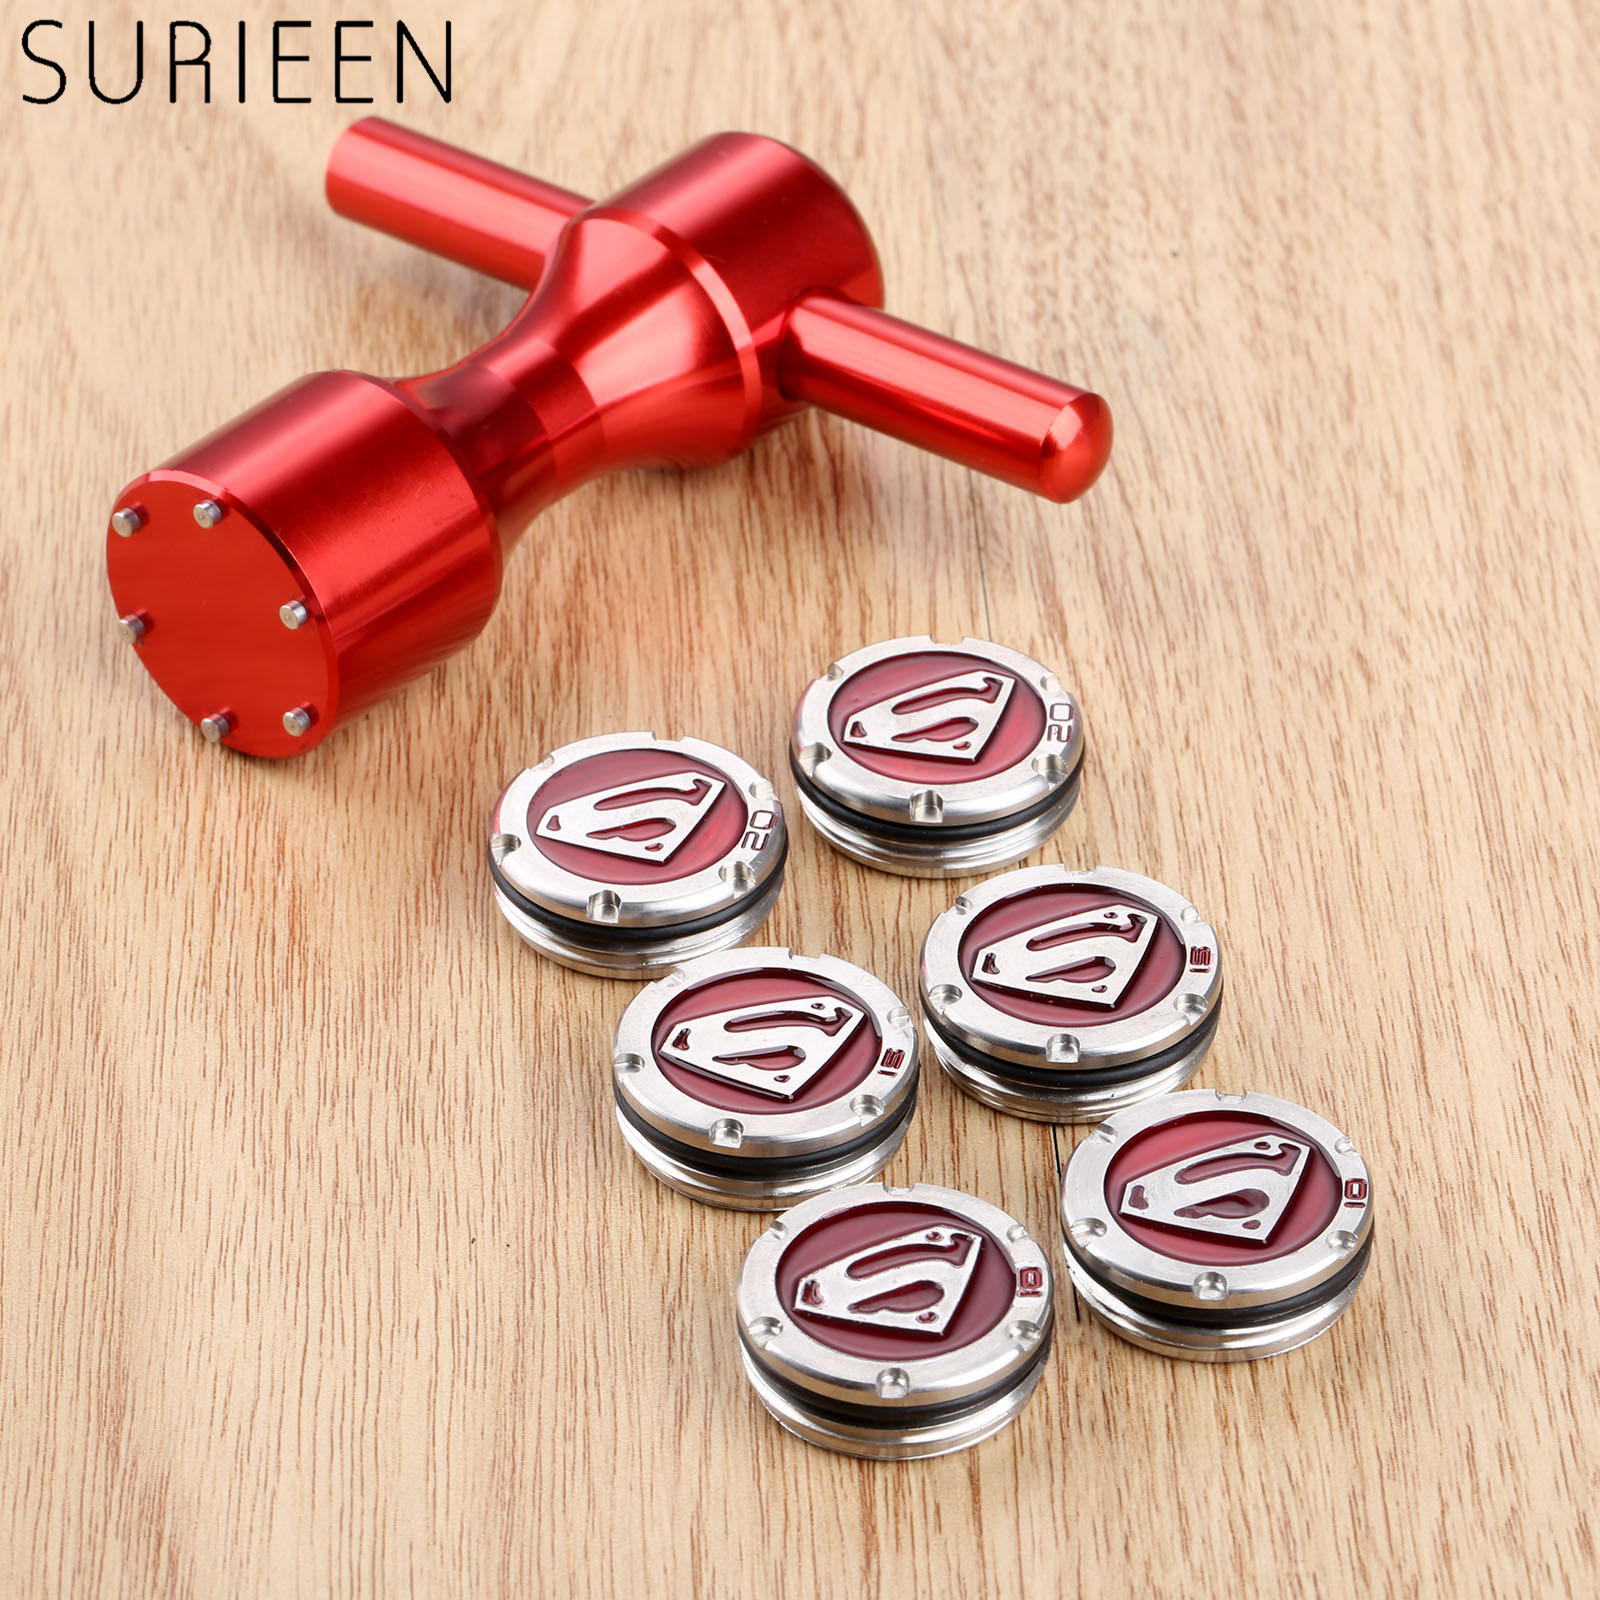 1 Pair (2Pcs) Stainless Steel For Scotty Cameron Putters Golf Weights 10g/15g/20g + 1 Pc Aluminum 6 Hole Golf Wrench Tool Red